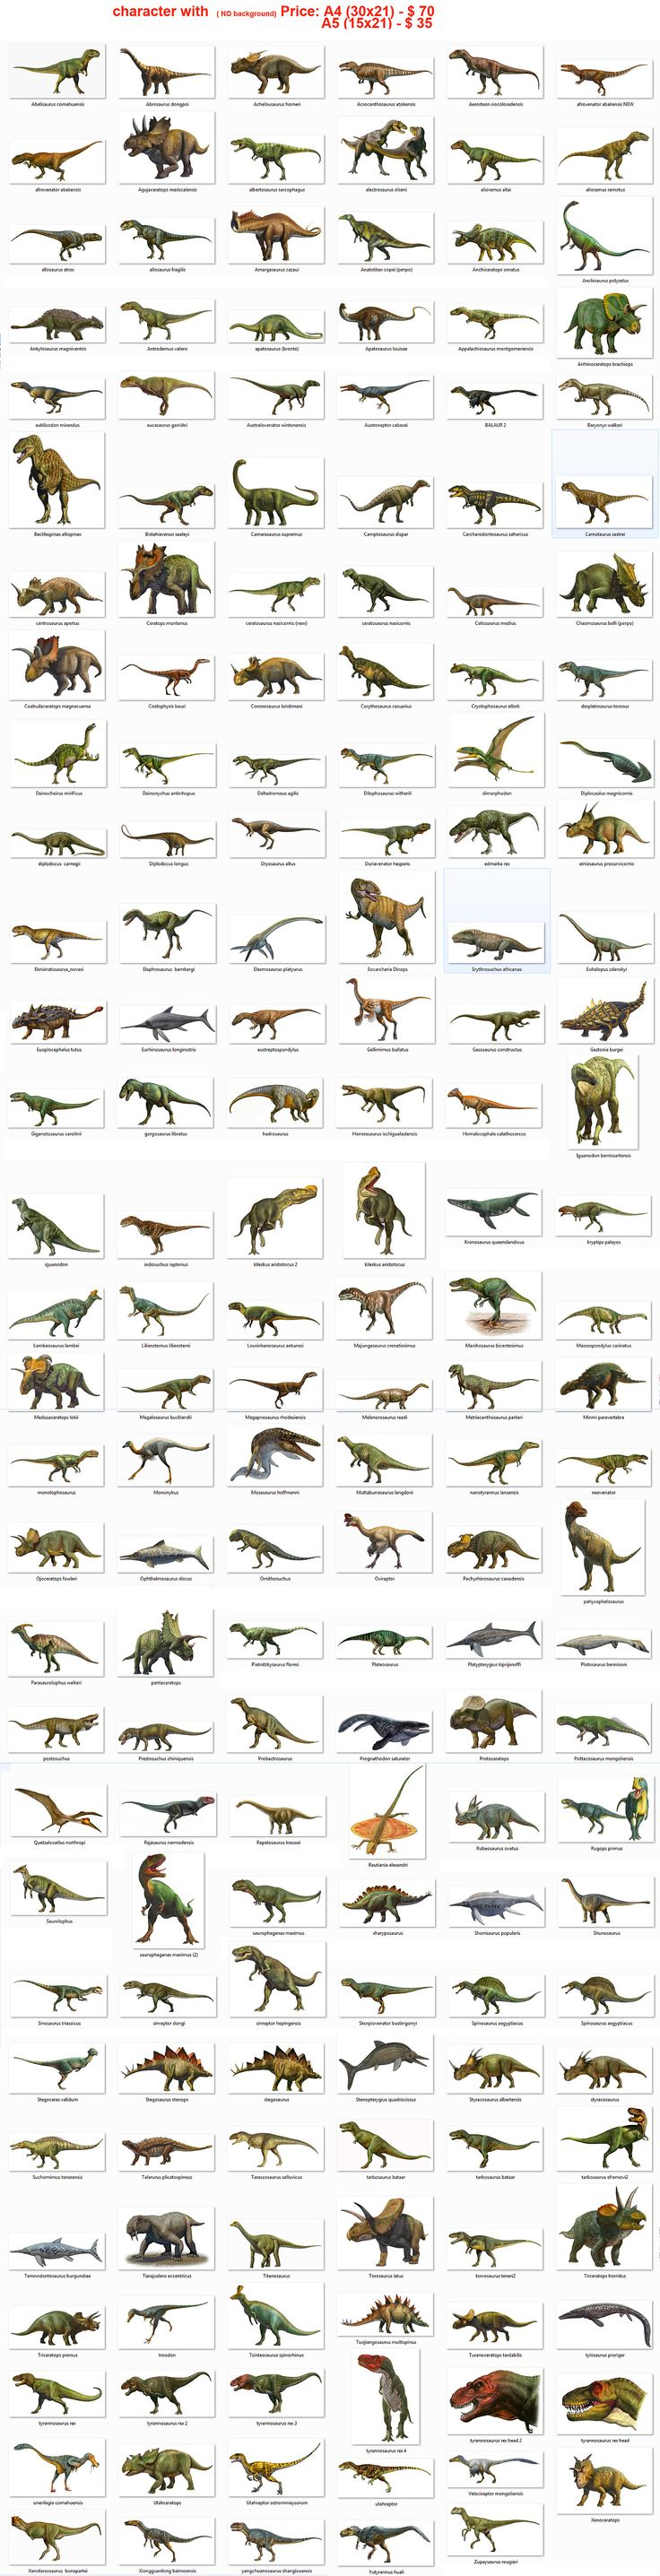 Dinosaurs!....pretty much all the dinosaurs ever discovered....give or take a couple of bones.